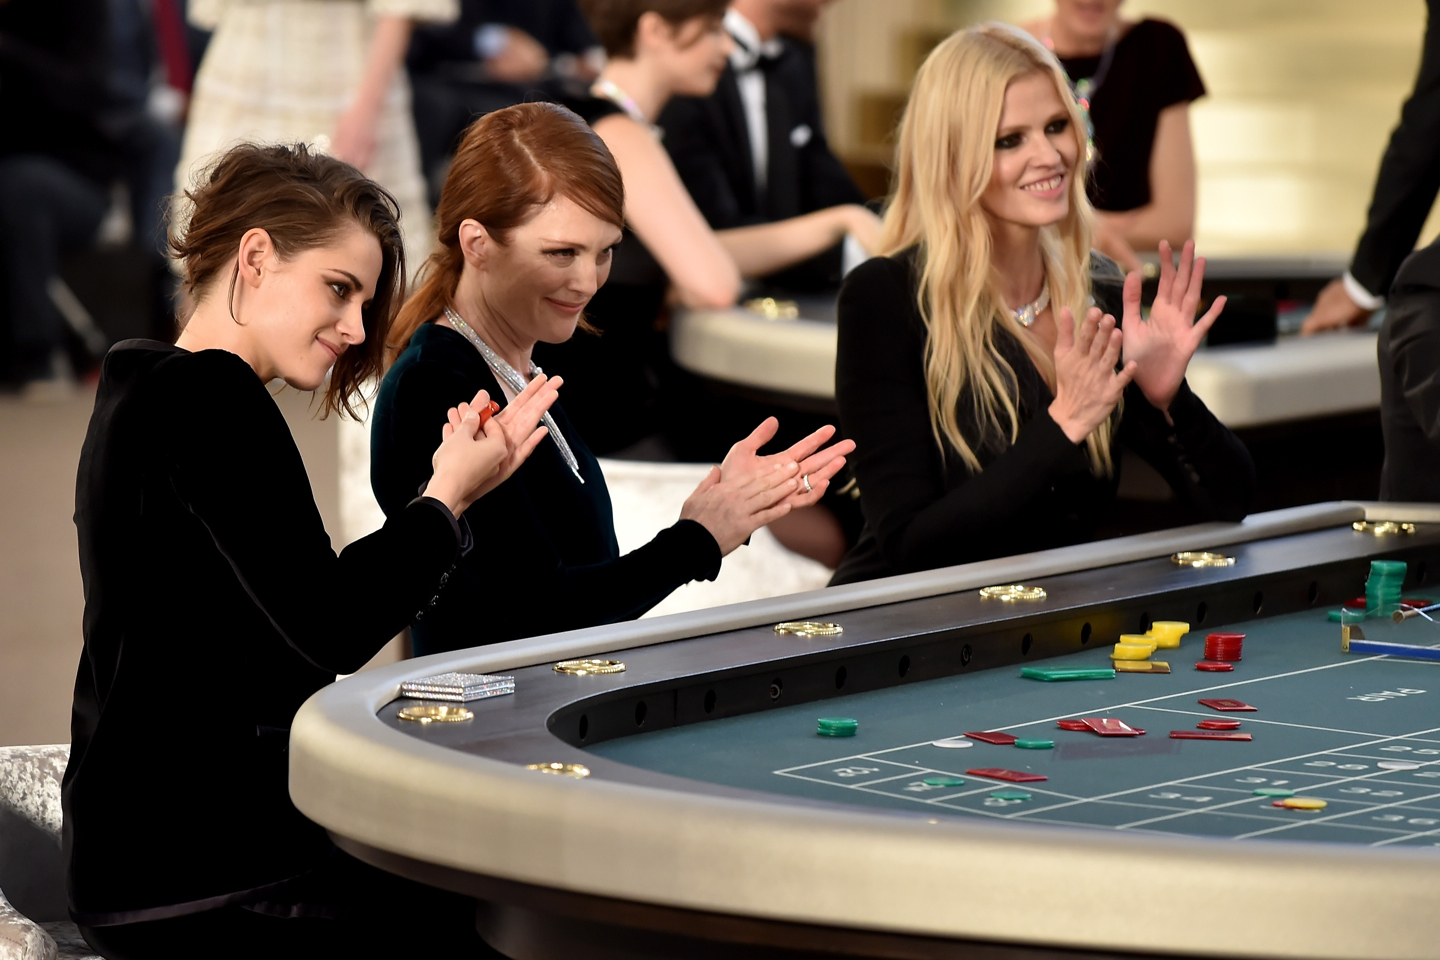 BEAUTY DIARIES BY BEAUTY LINE - WHY THE LADIES ARE GAMBLING?